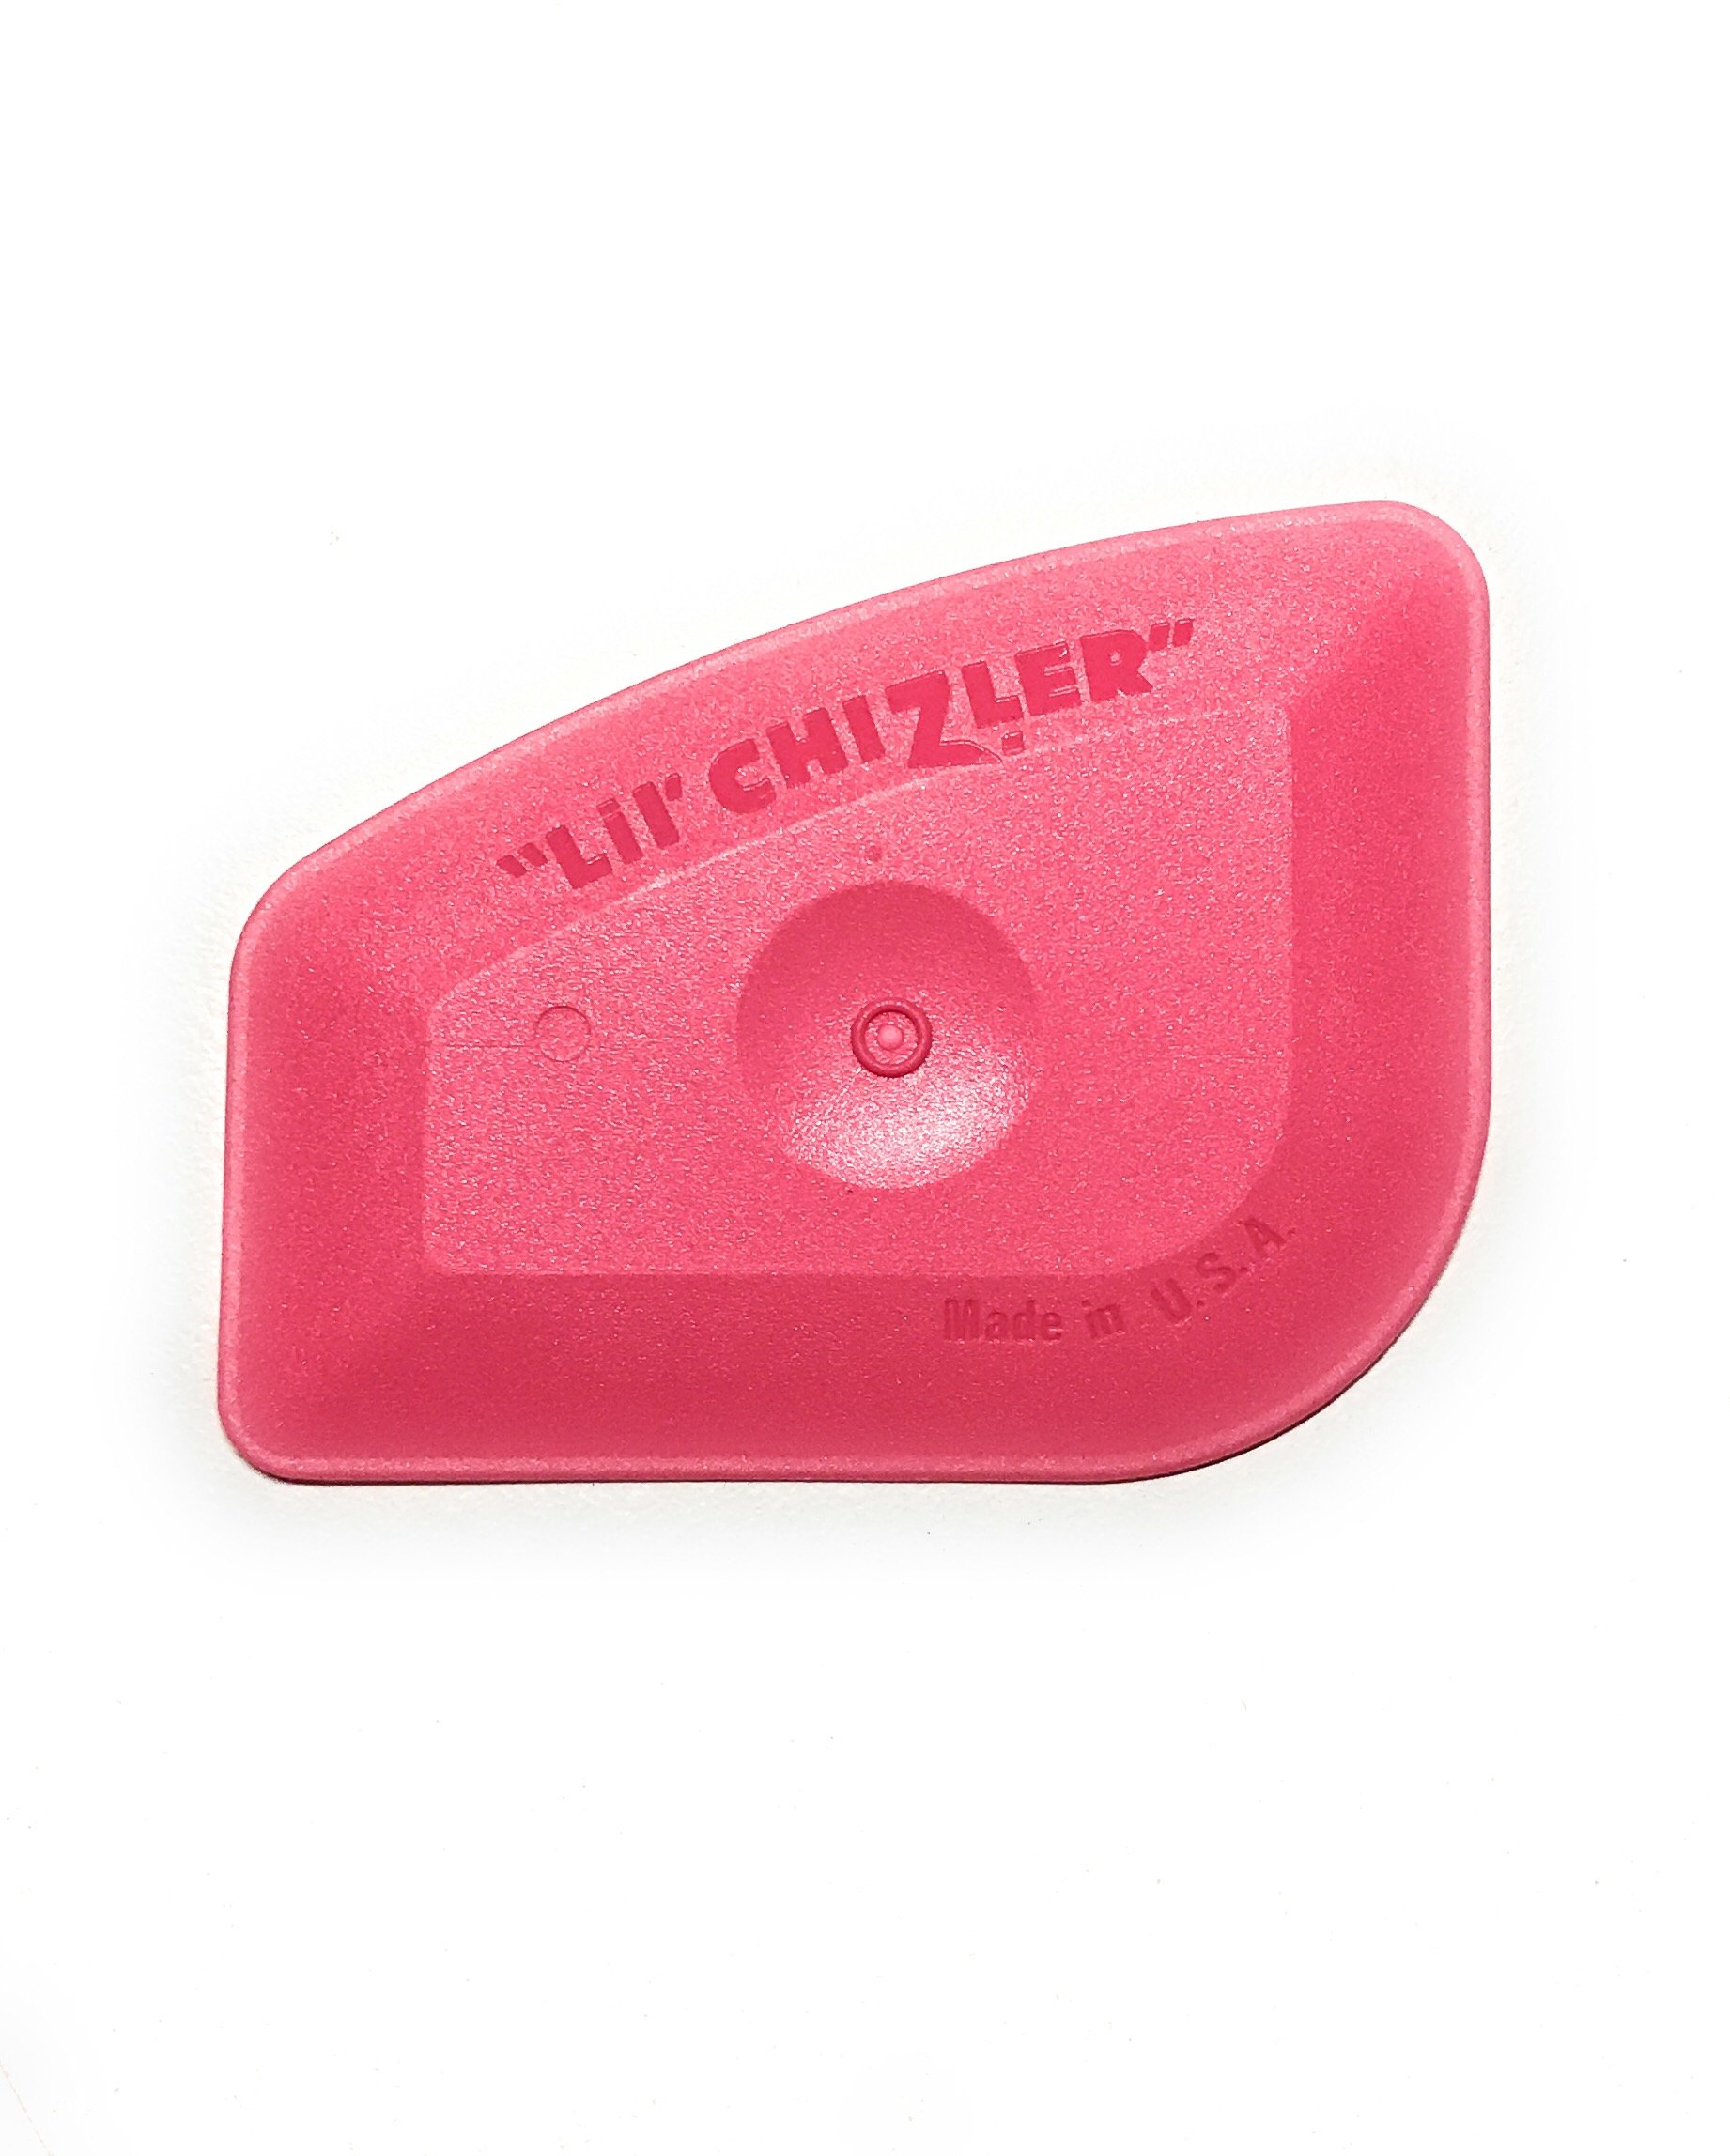 Lil Chizler Vinyl Label Scraping Tool, (Pack of 50) by Lil Chizler